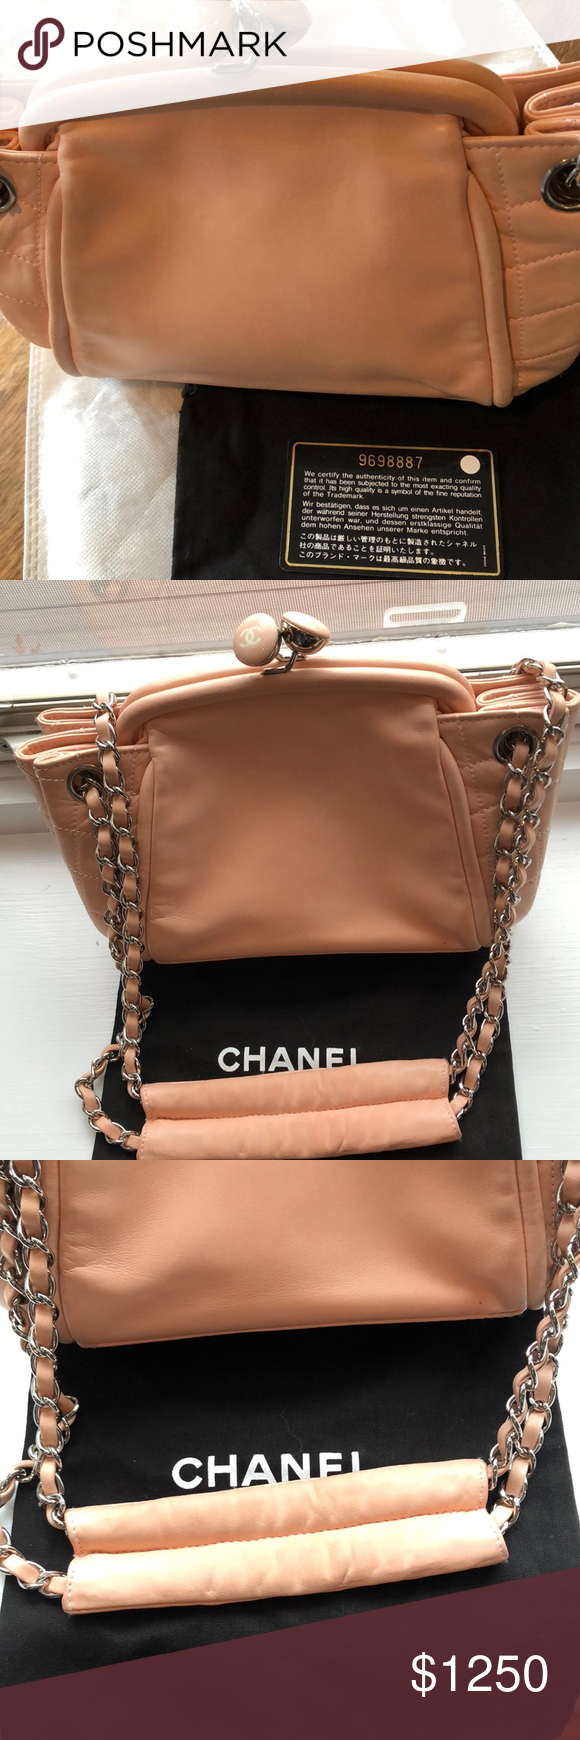 130742b9fd02 I just added this listing on Poshmark: Chanel Pink Blush Lambskin kisslock  Shoulder Bag. #shopmycloset #poshmark #fashion #shopping #style #forsale # CHANEL ...